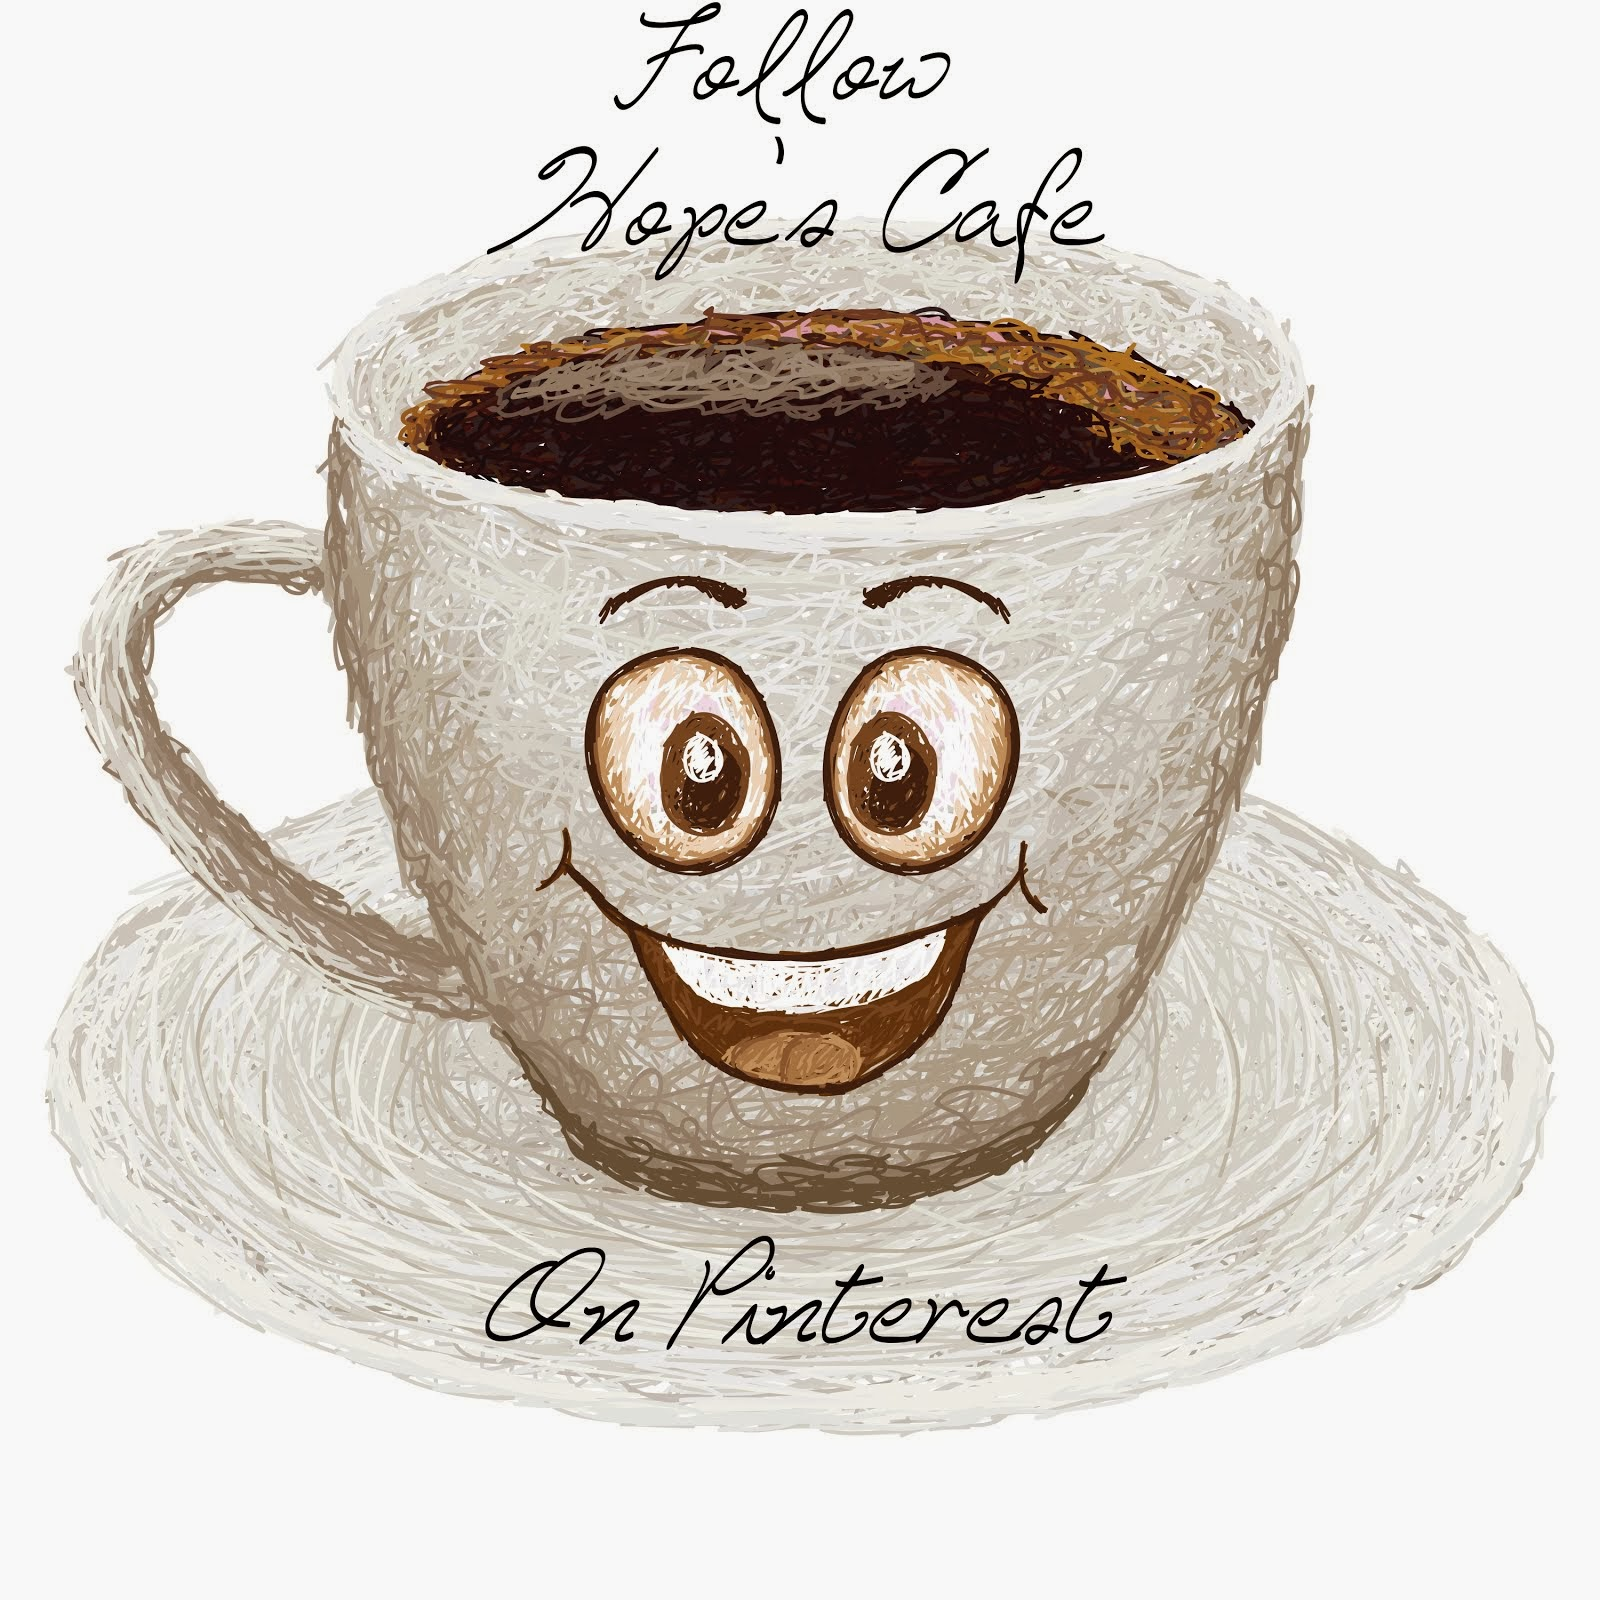 Hope's Cafe on Pinterest!